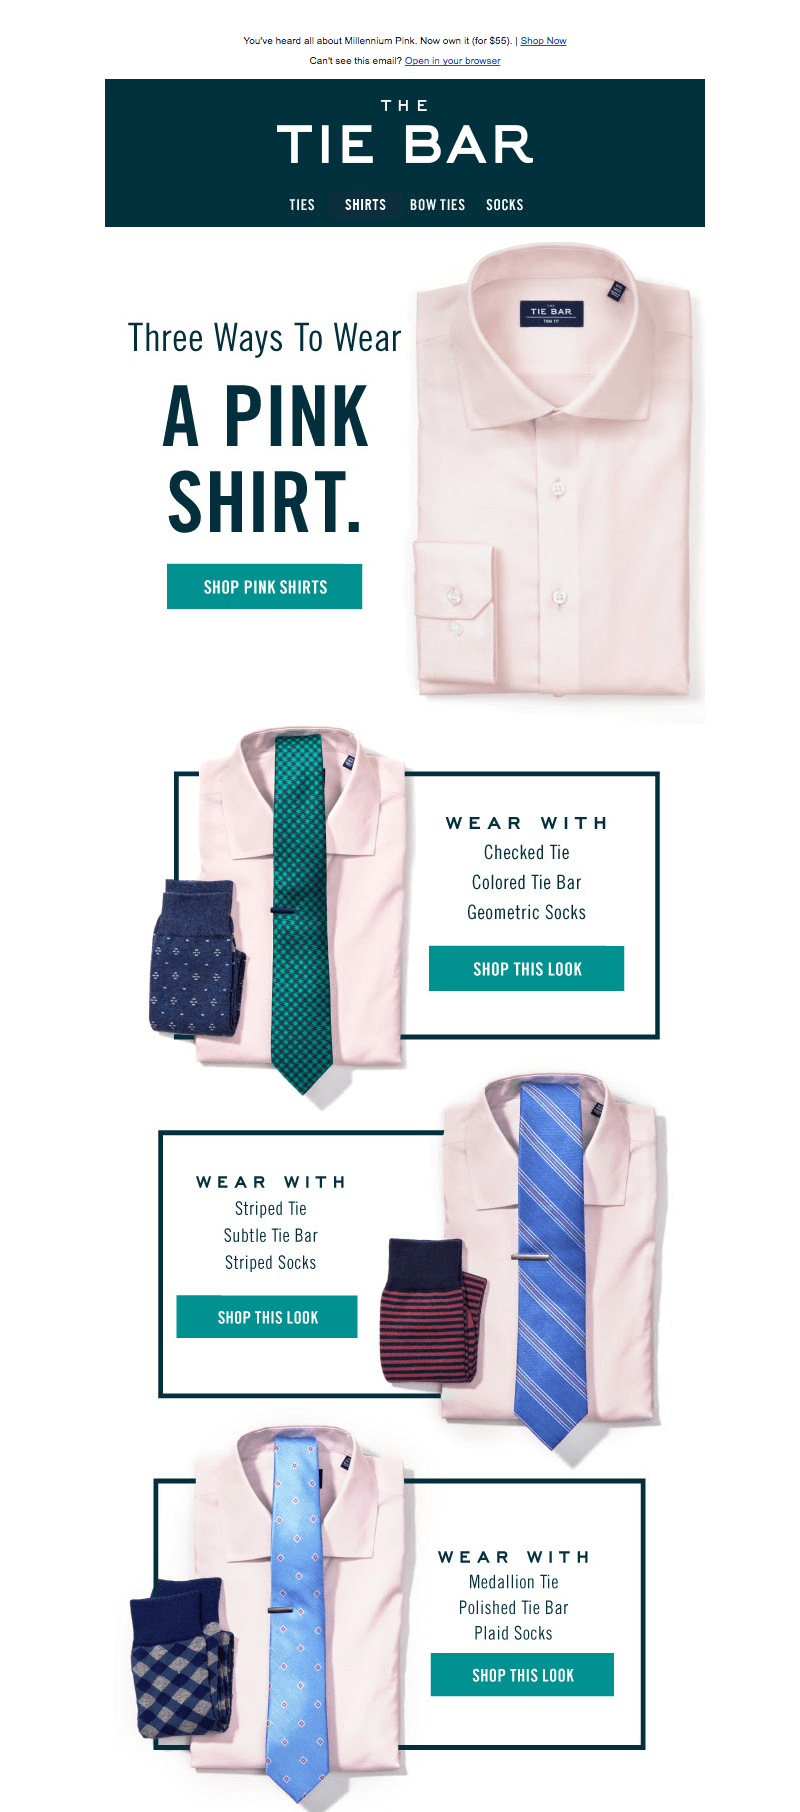 Millennial pink email from the Tie Bar